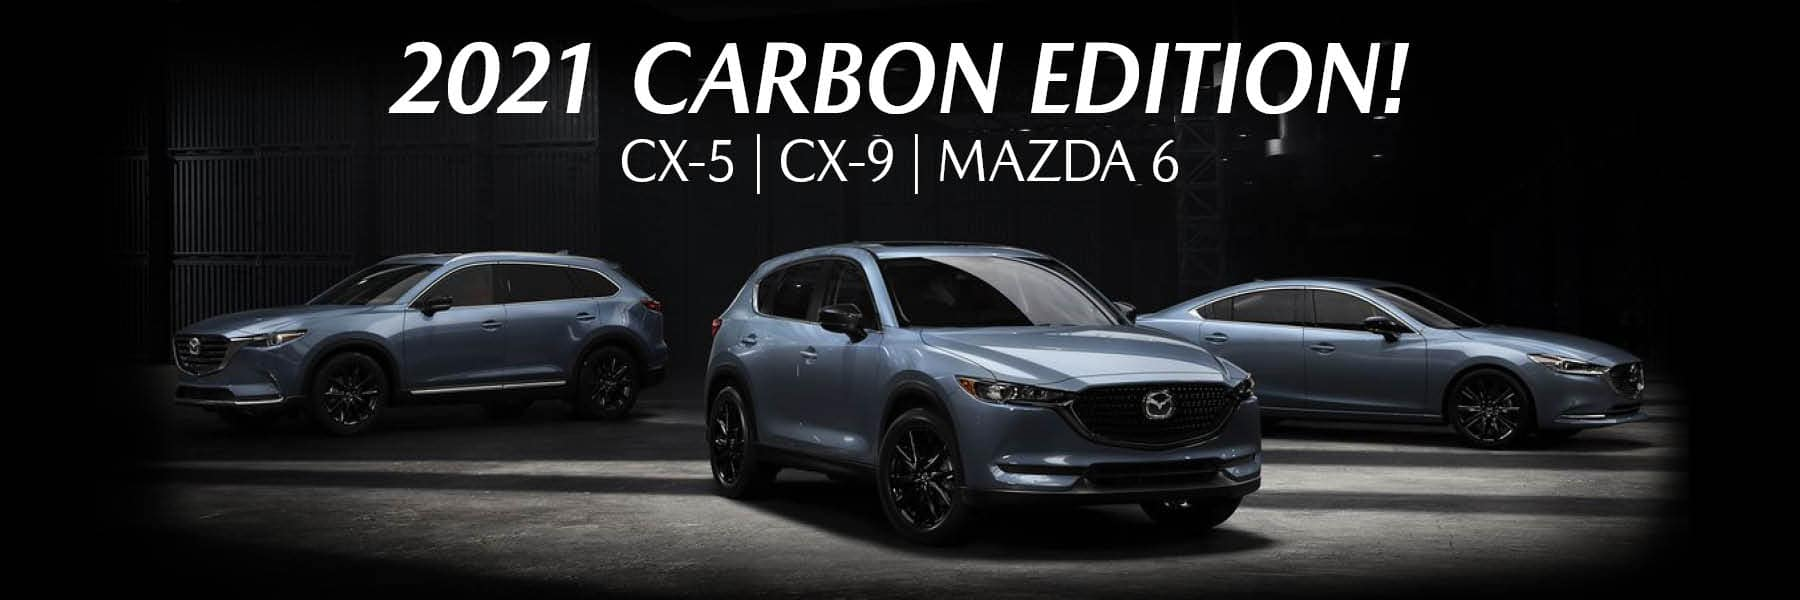 carbonT3971 HQ MAZDA – 1800X600 – January Web Slides2 (1)